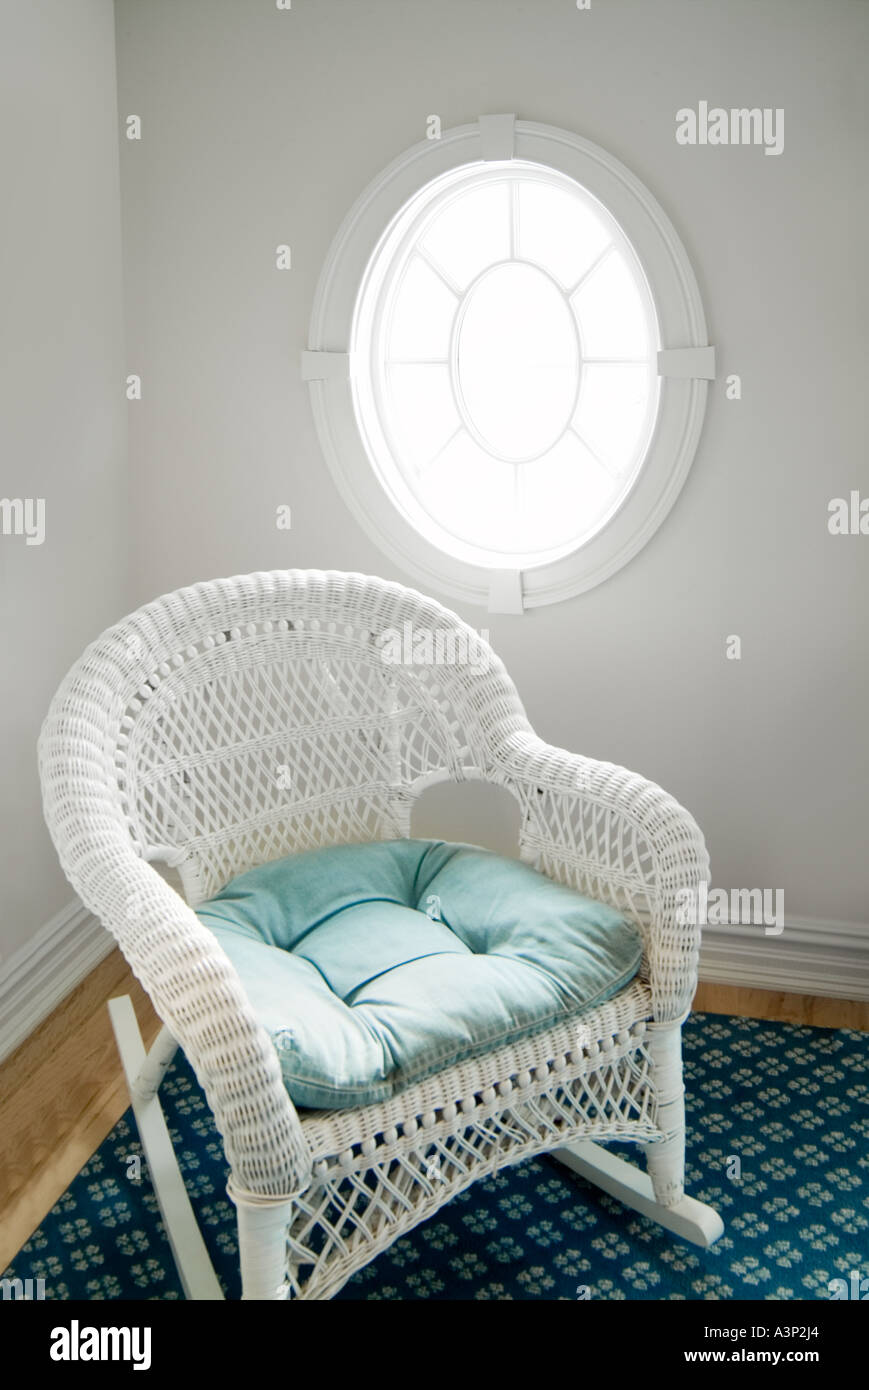 White Rattan Wicker Rocking Chair And Oval Window With Sunshine